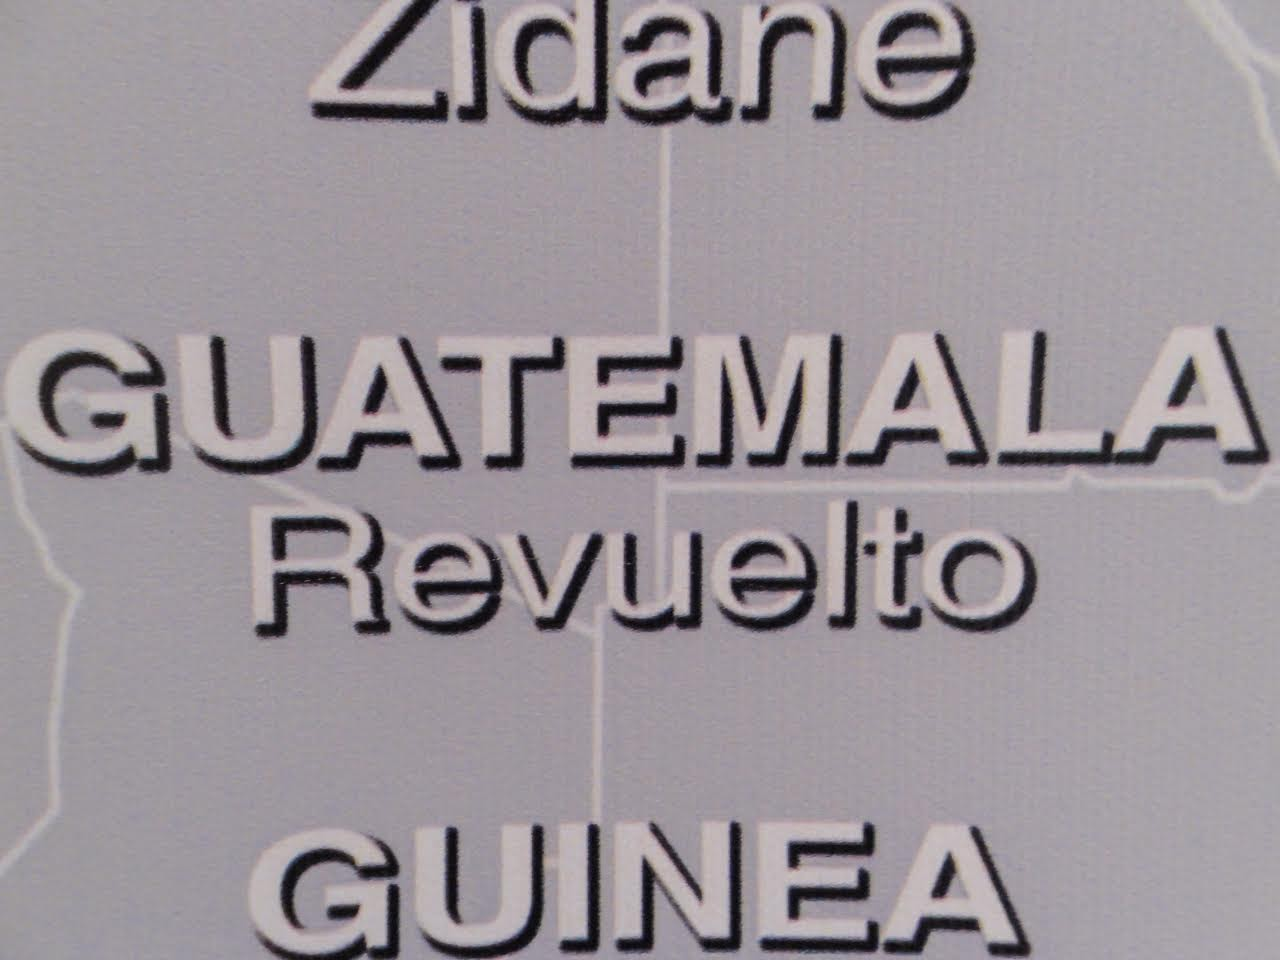 A Guatemalan Player named Revuelto played for Real Madrid in the past